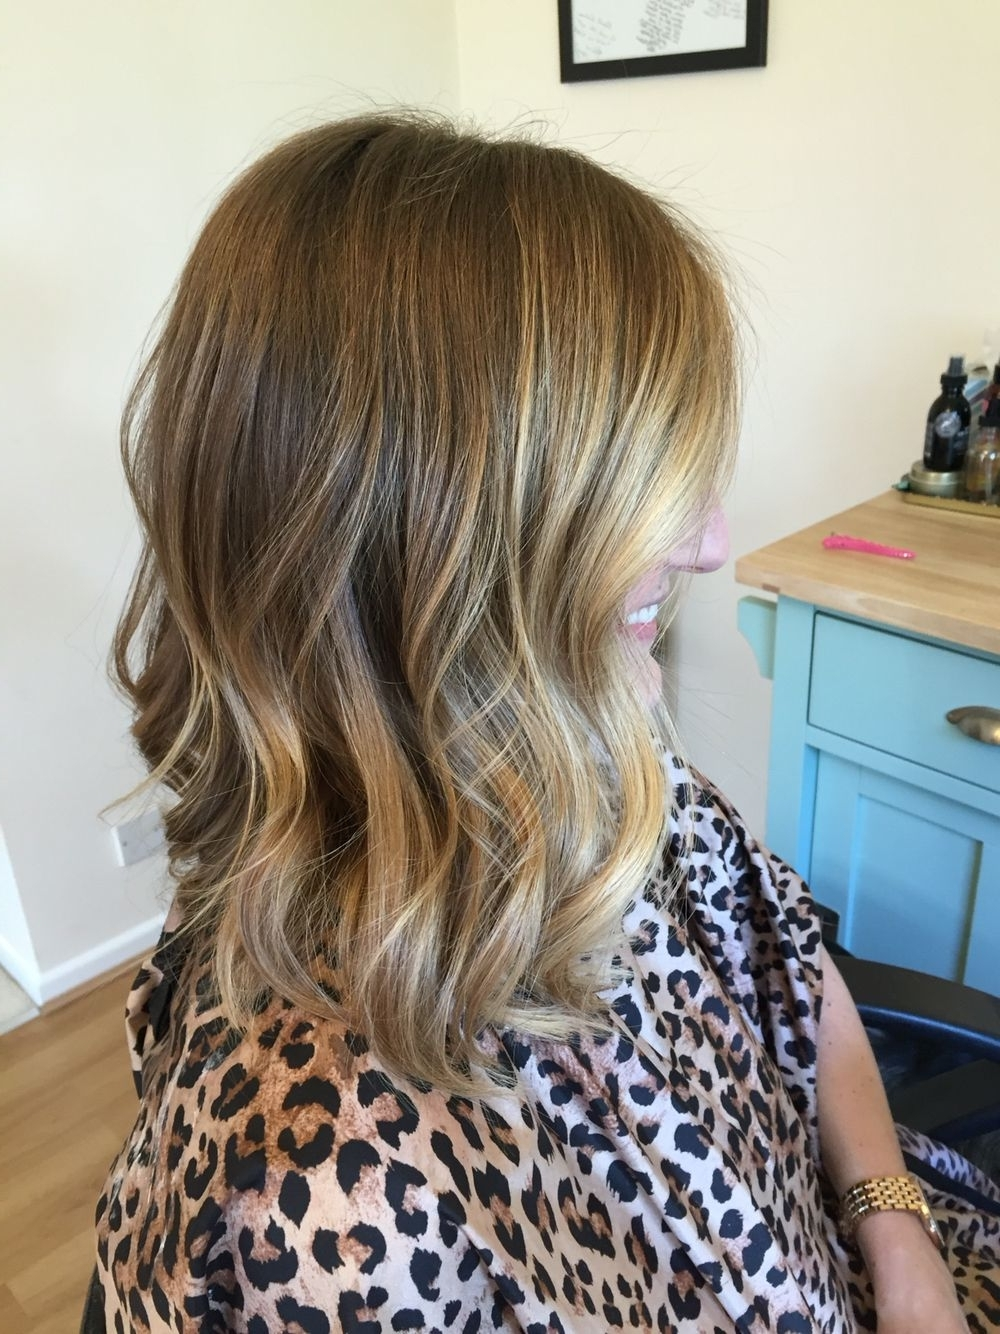 Current Sunkissed Long Locks Blonde Hairstyles Within Sun Kissed Bronde Balayage! Love This Subtle But Striking Blonde (View 6 of 20)